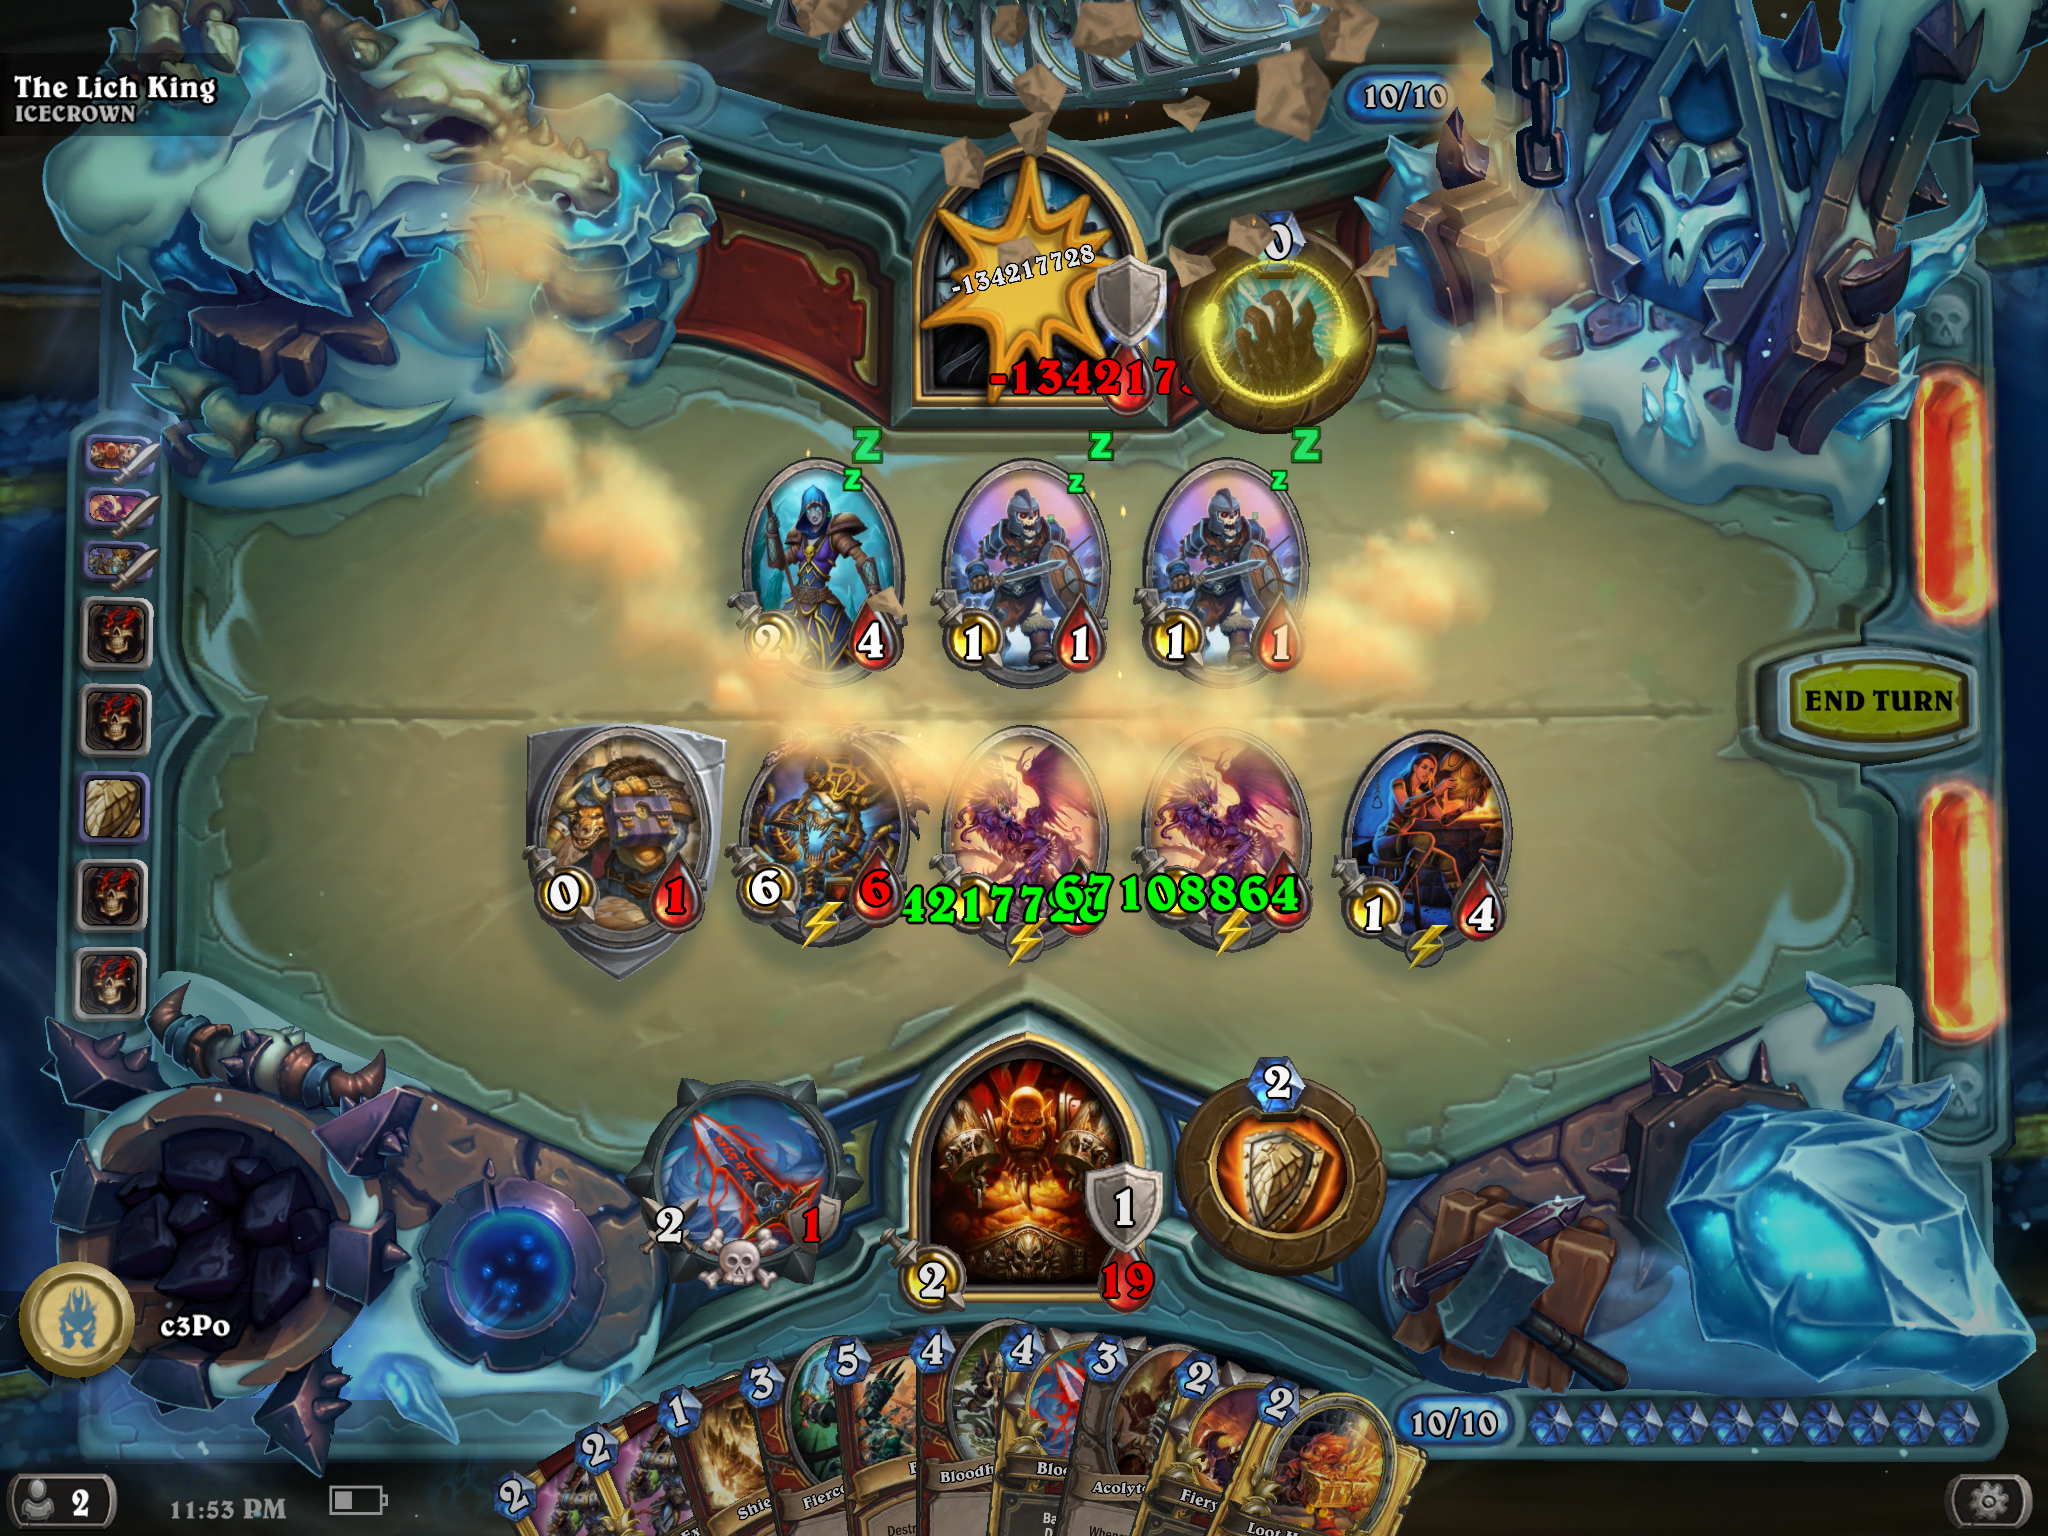 How are yall doing with Lich King? - Adventures